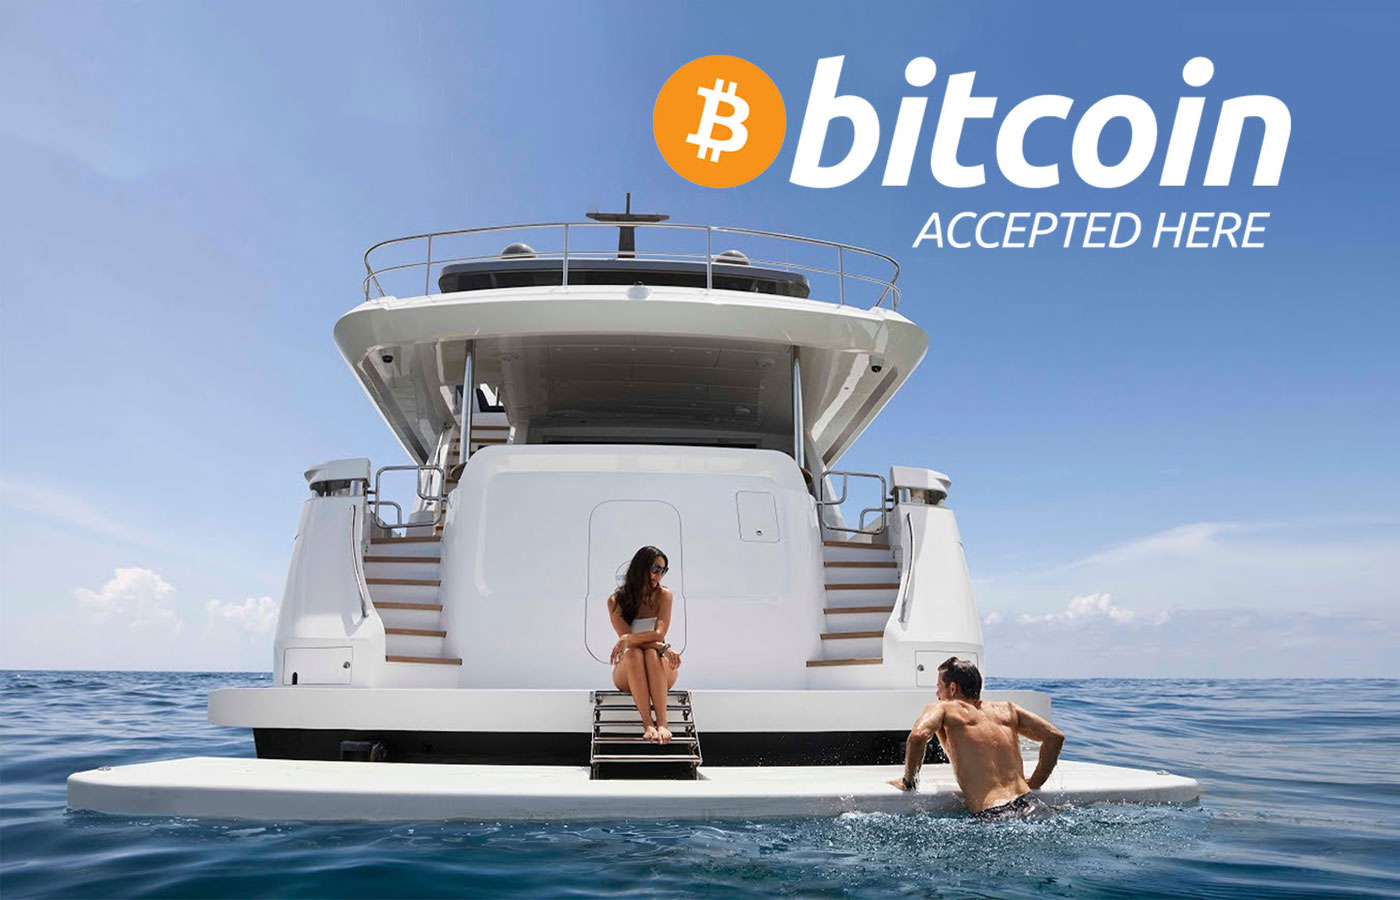 Purchase + Charter Yacht W Cryptocurrency